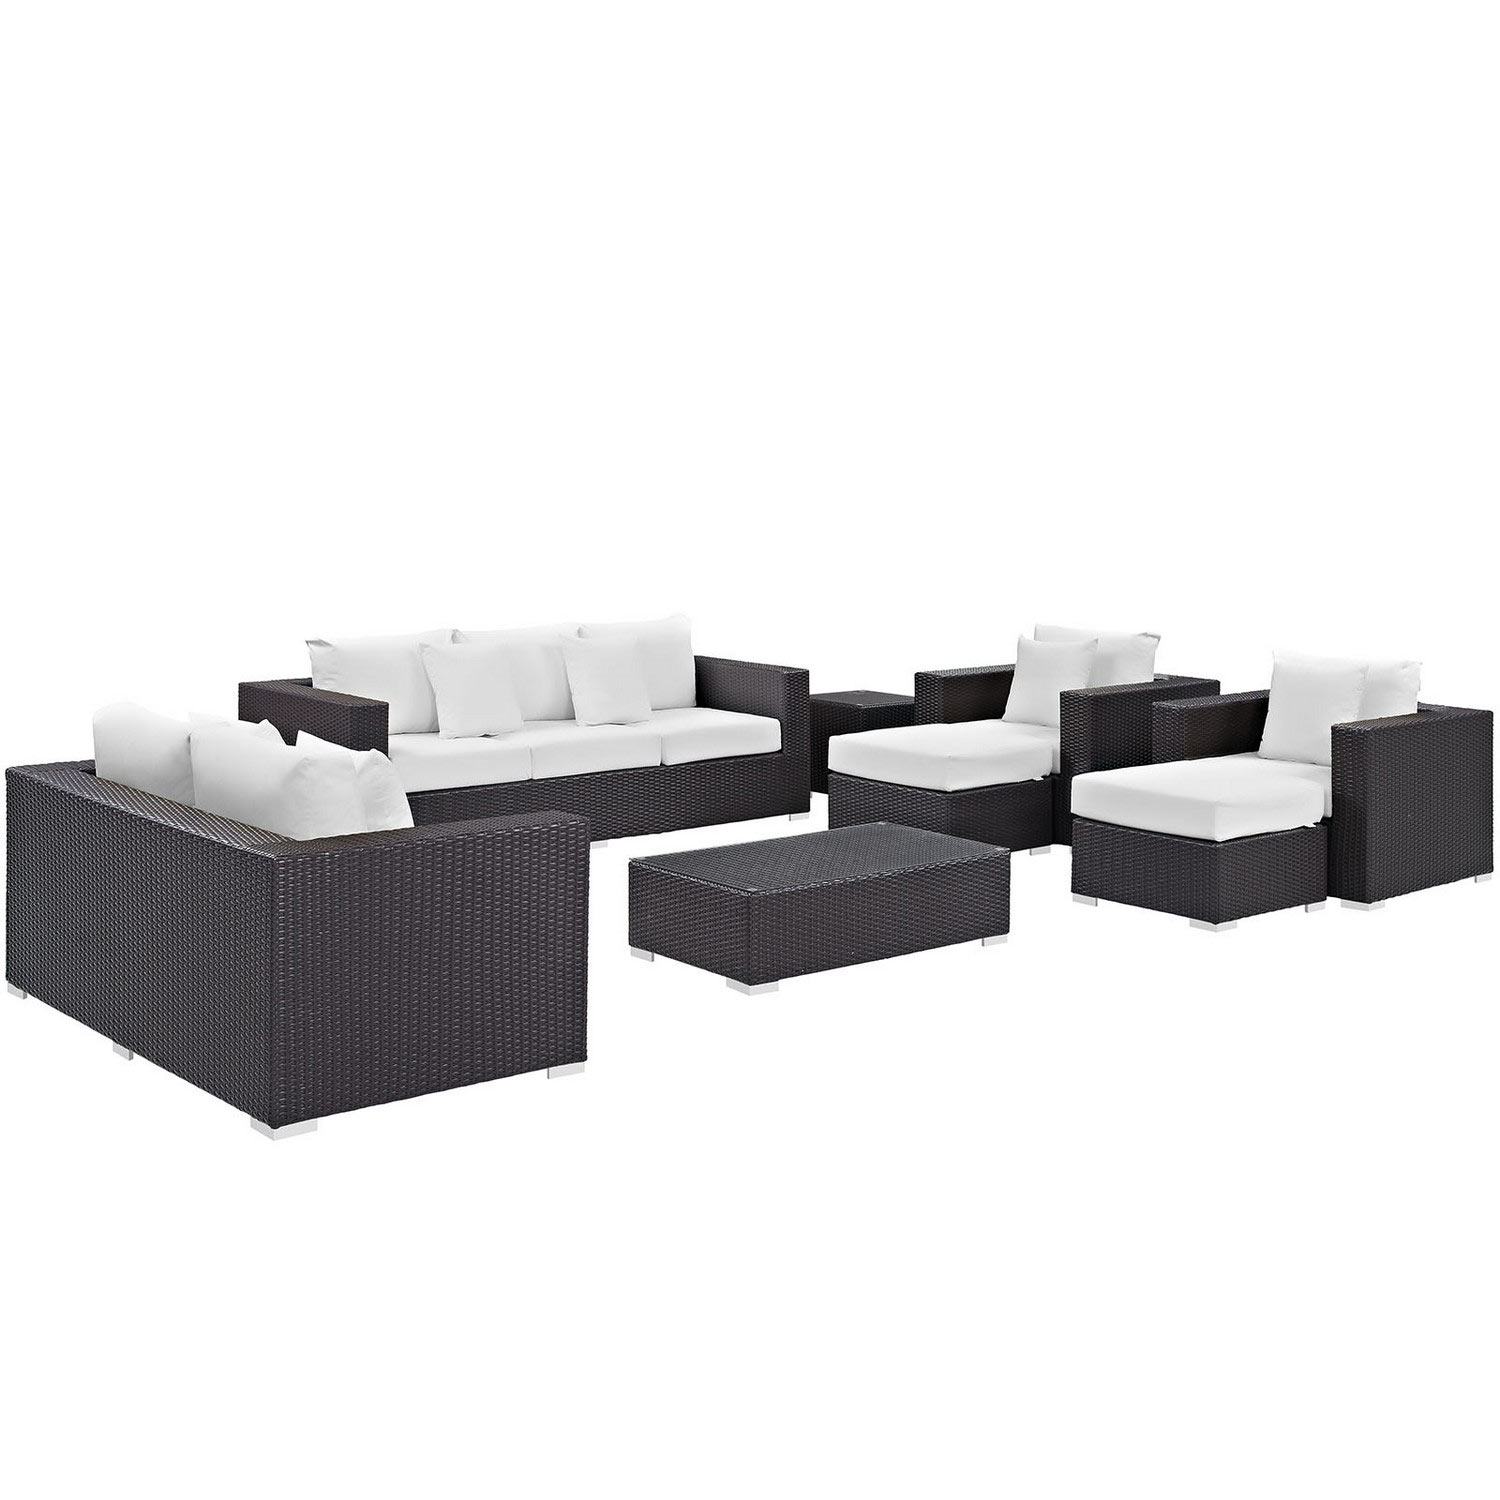 Modway Convene 9 Piece Outdoor Patio Sofa Set - Espresso White